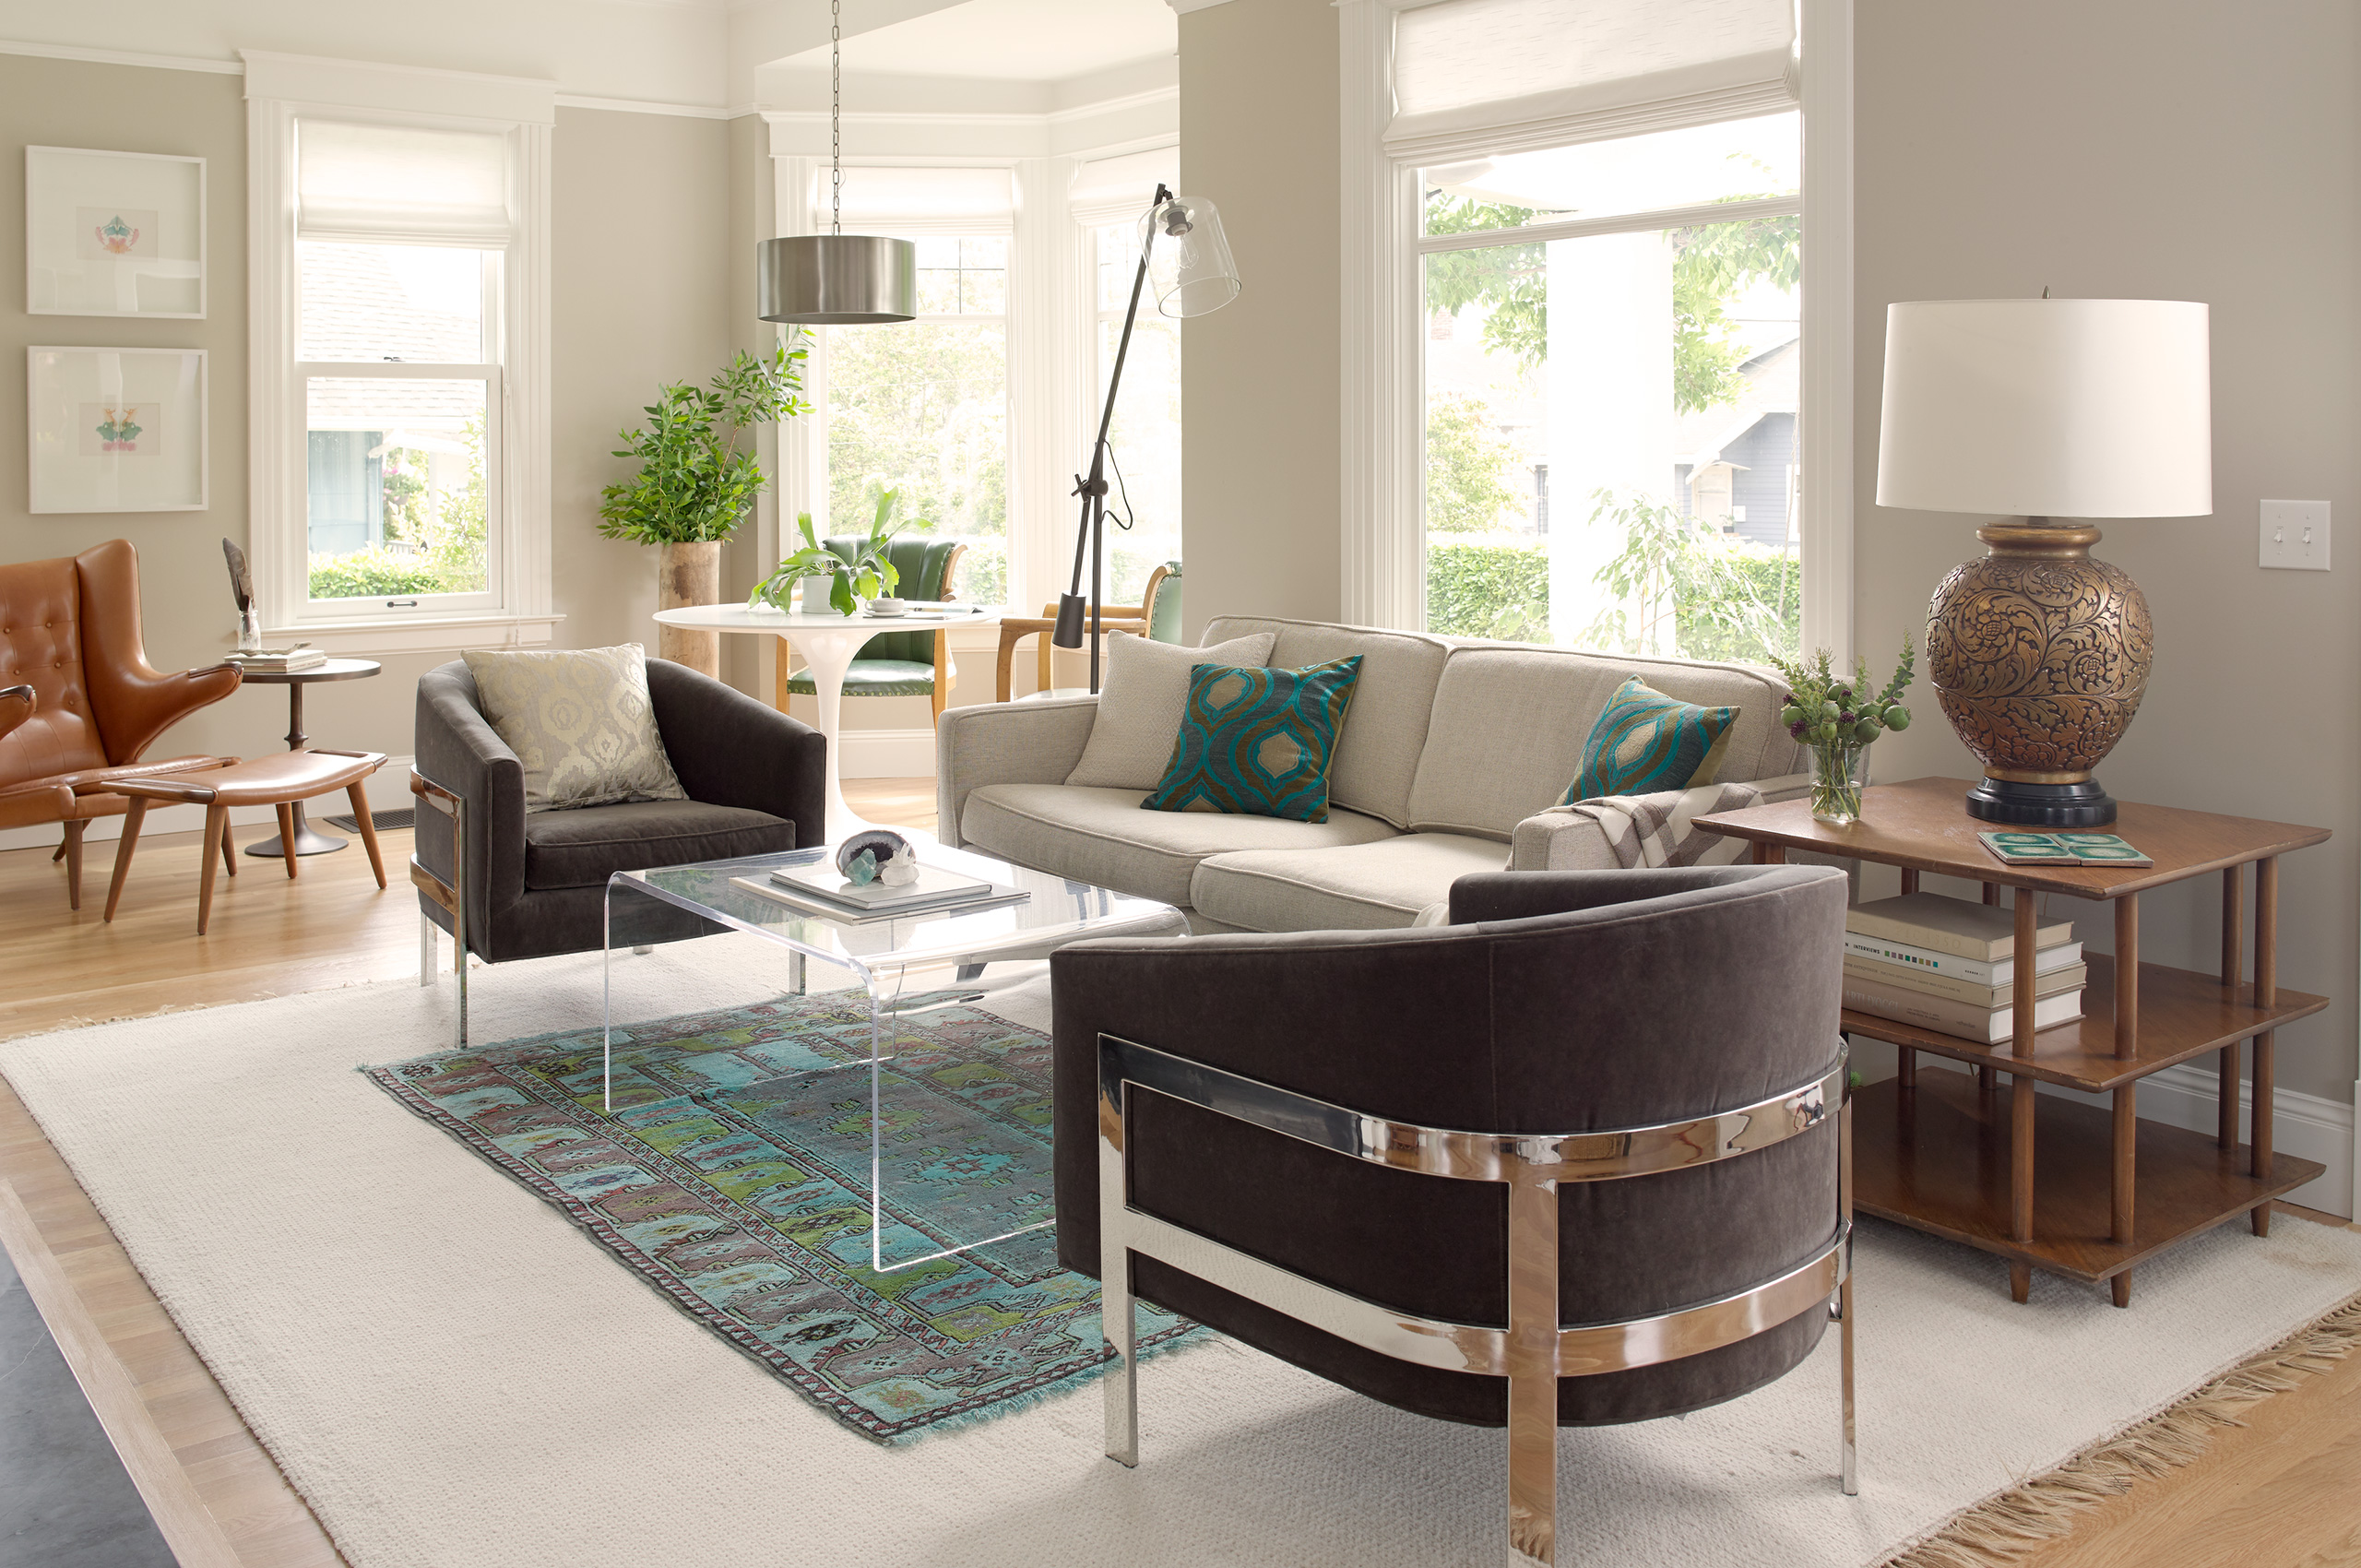 gray-magazine-hanson-living-room.jpg